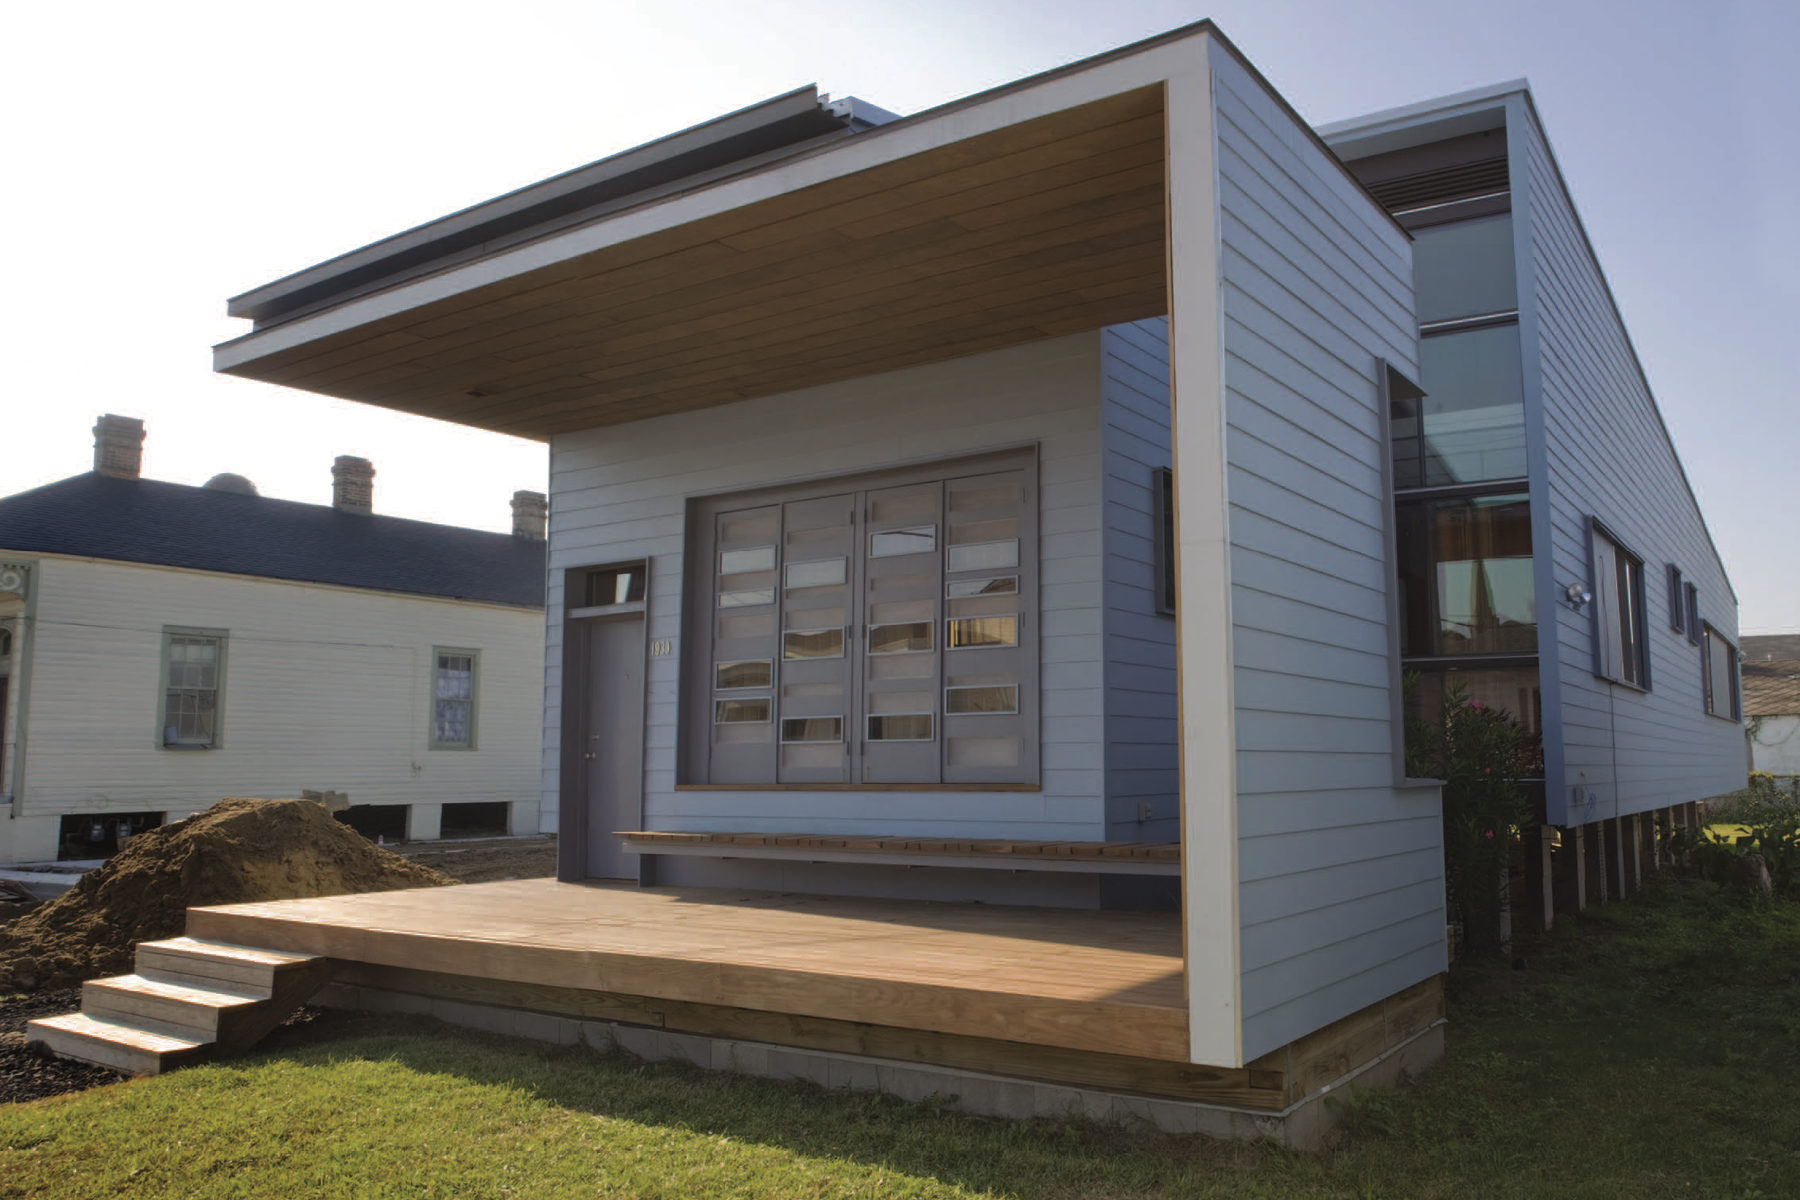 Front view of a modern single-story home with exposed porch and steps down into grass yard